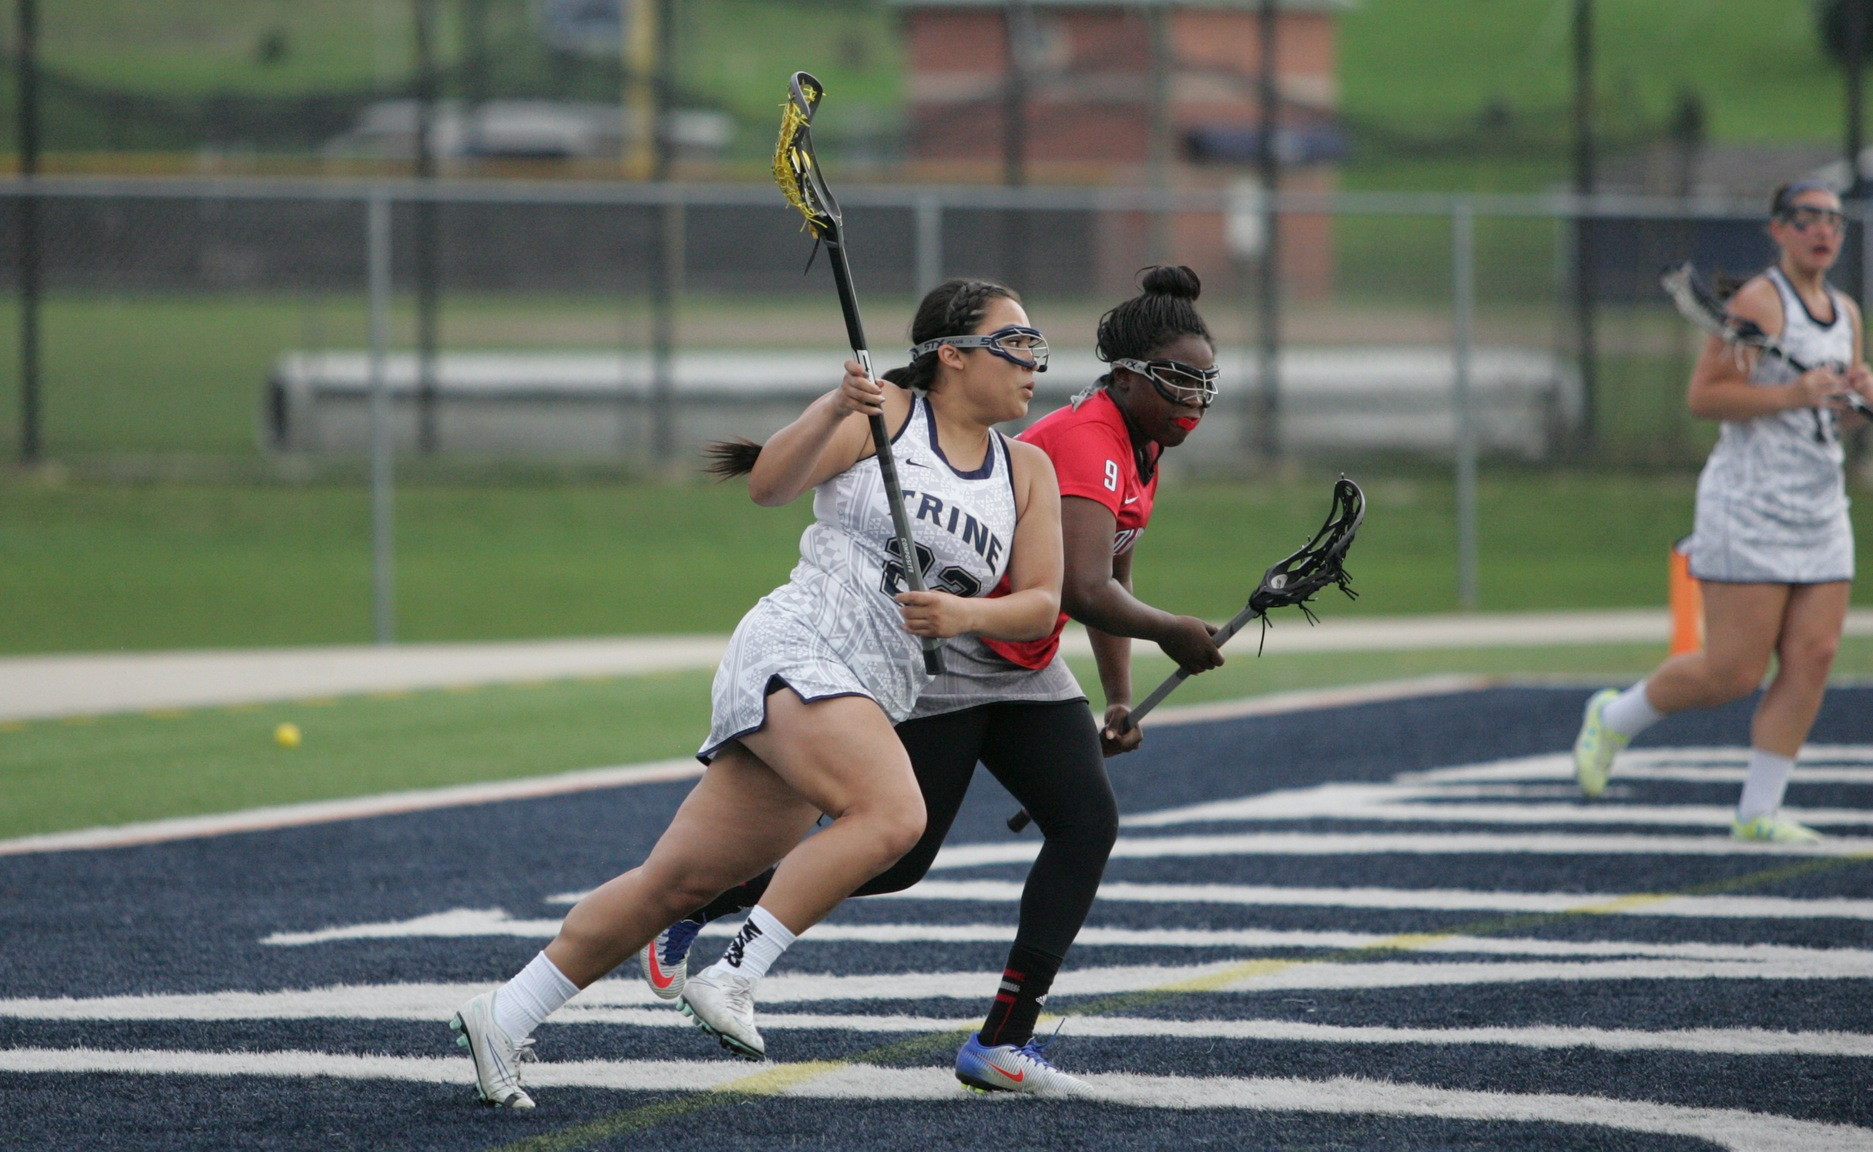 Women's Lacrosse Team Announces Summer Camp